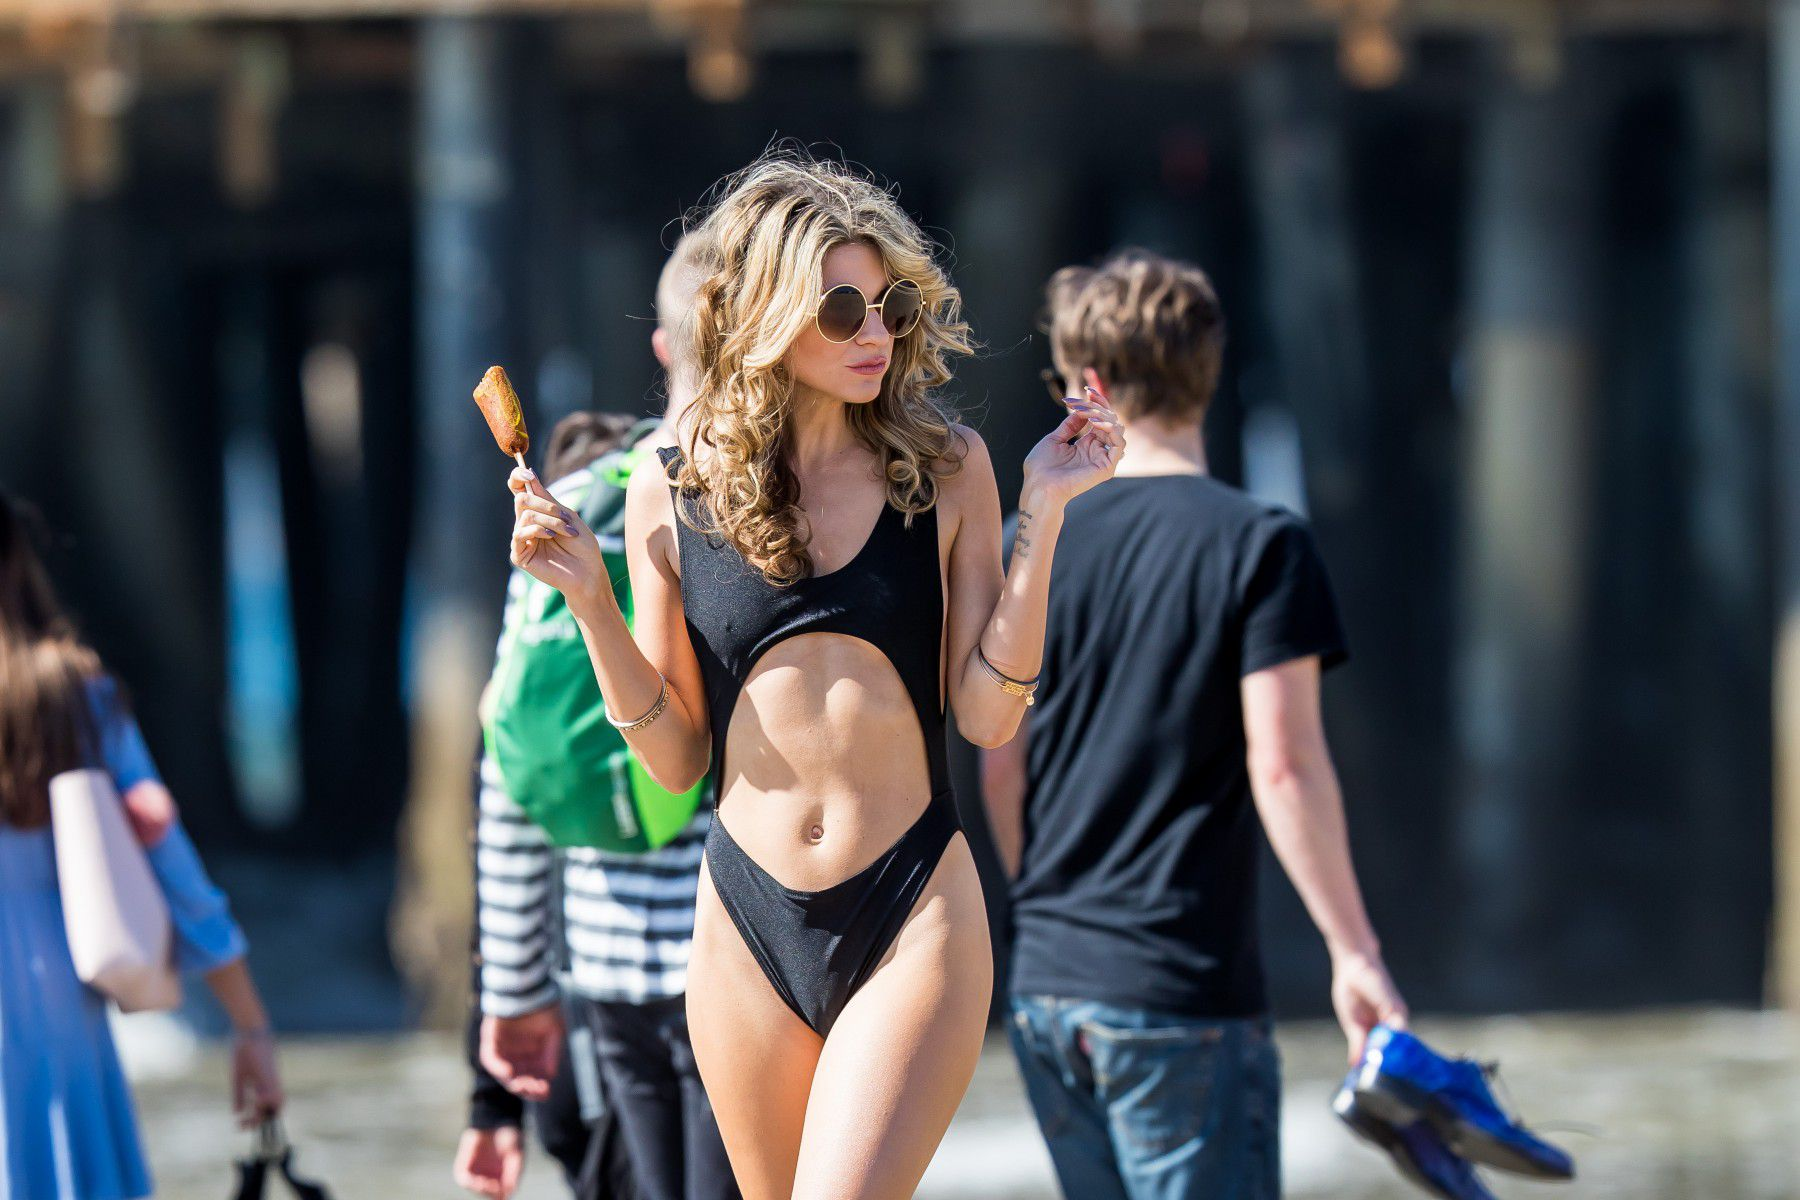 rachel-mccord-cameltoe-in-black-swimsuit-on-the-beach-in-santa-monica-3086